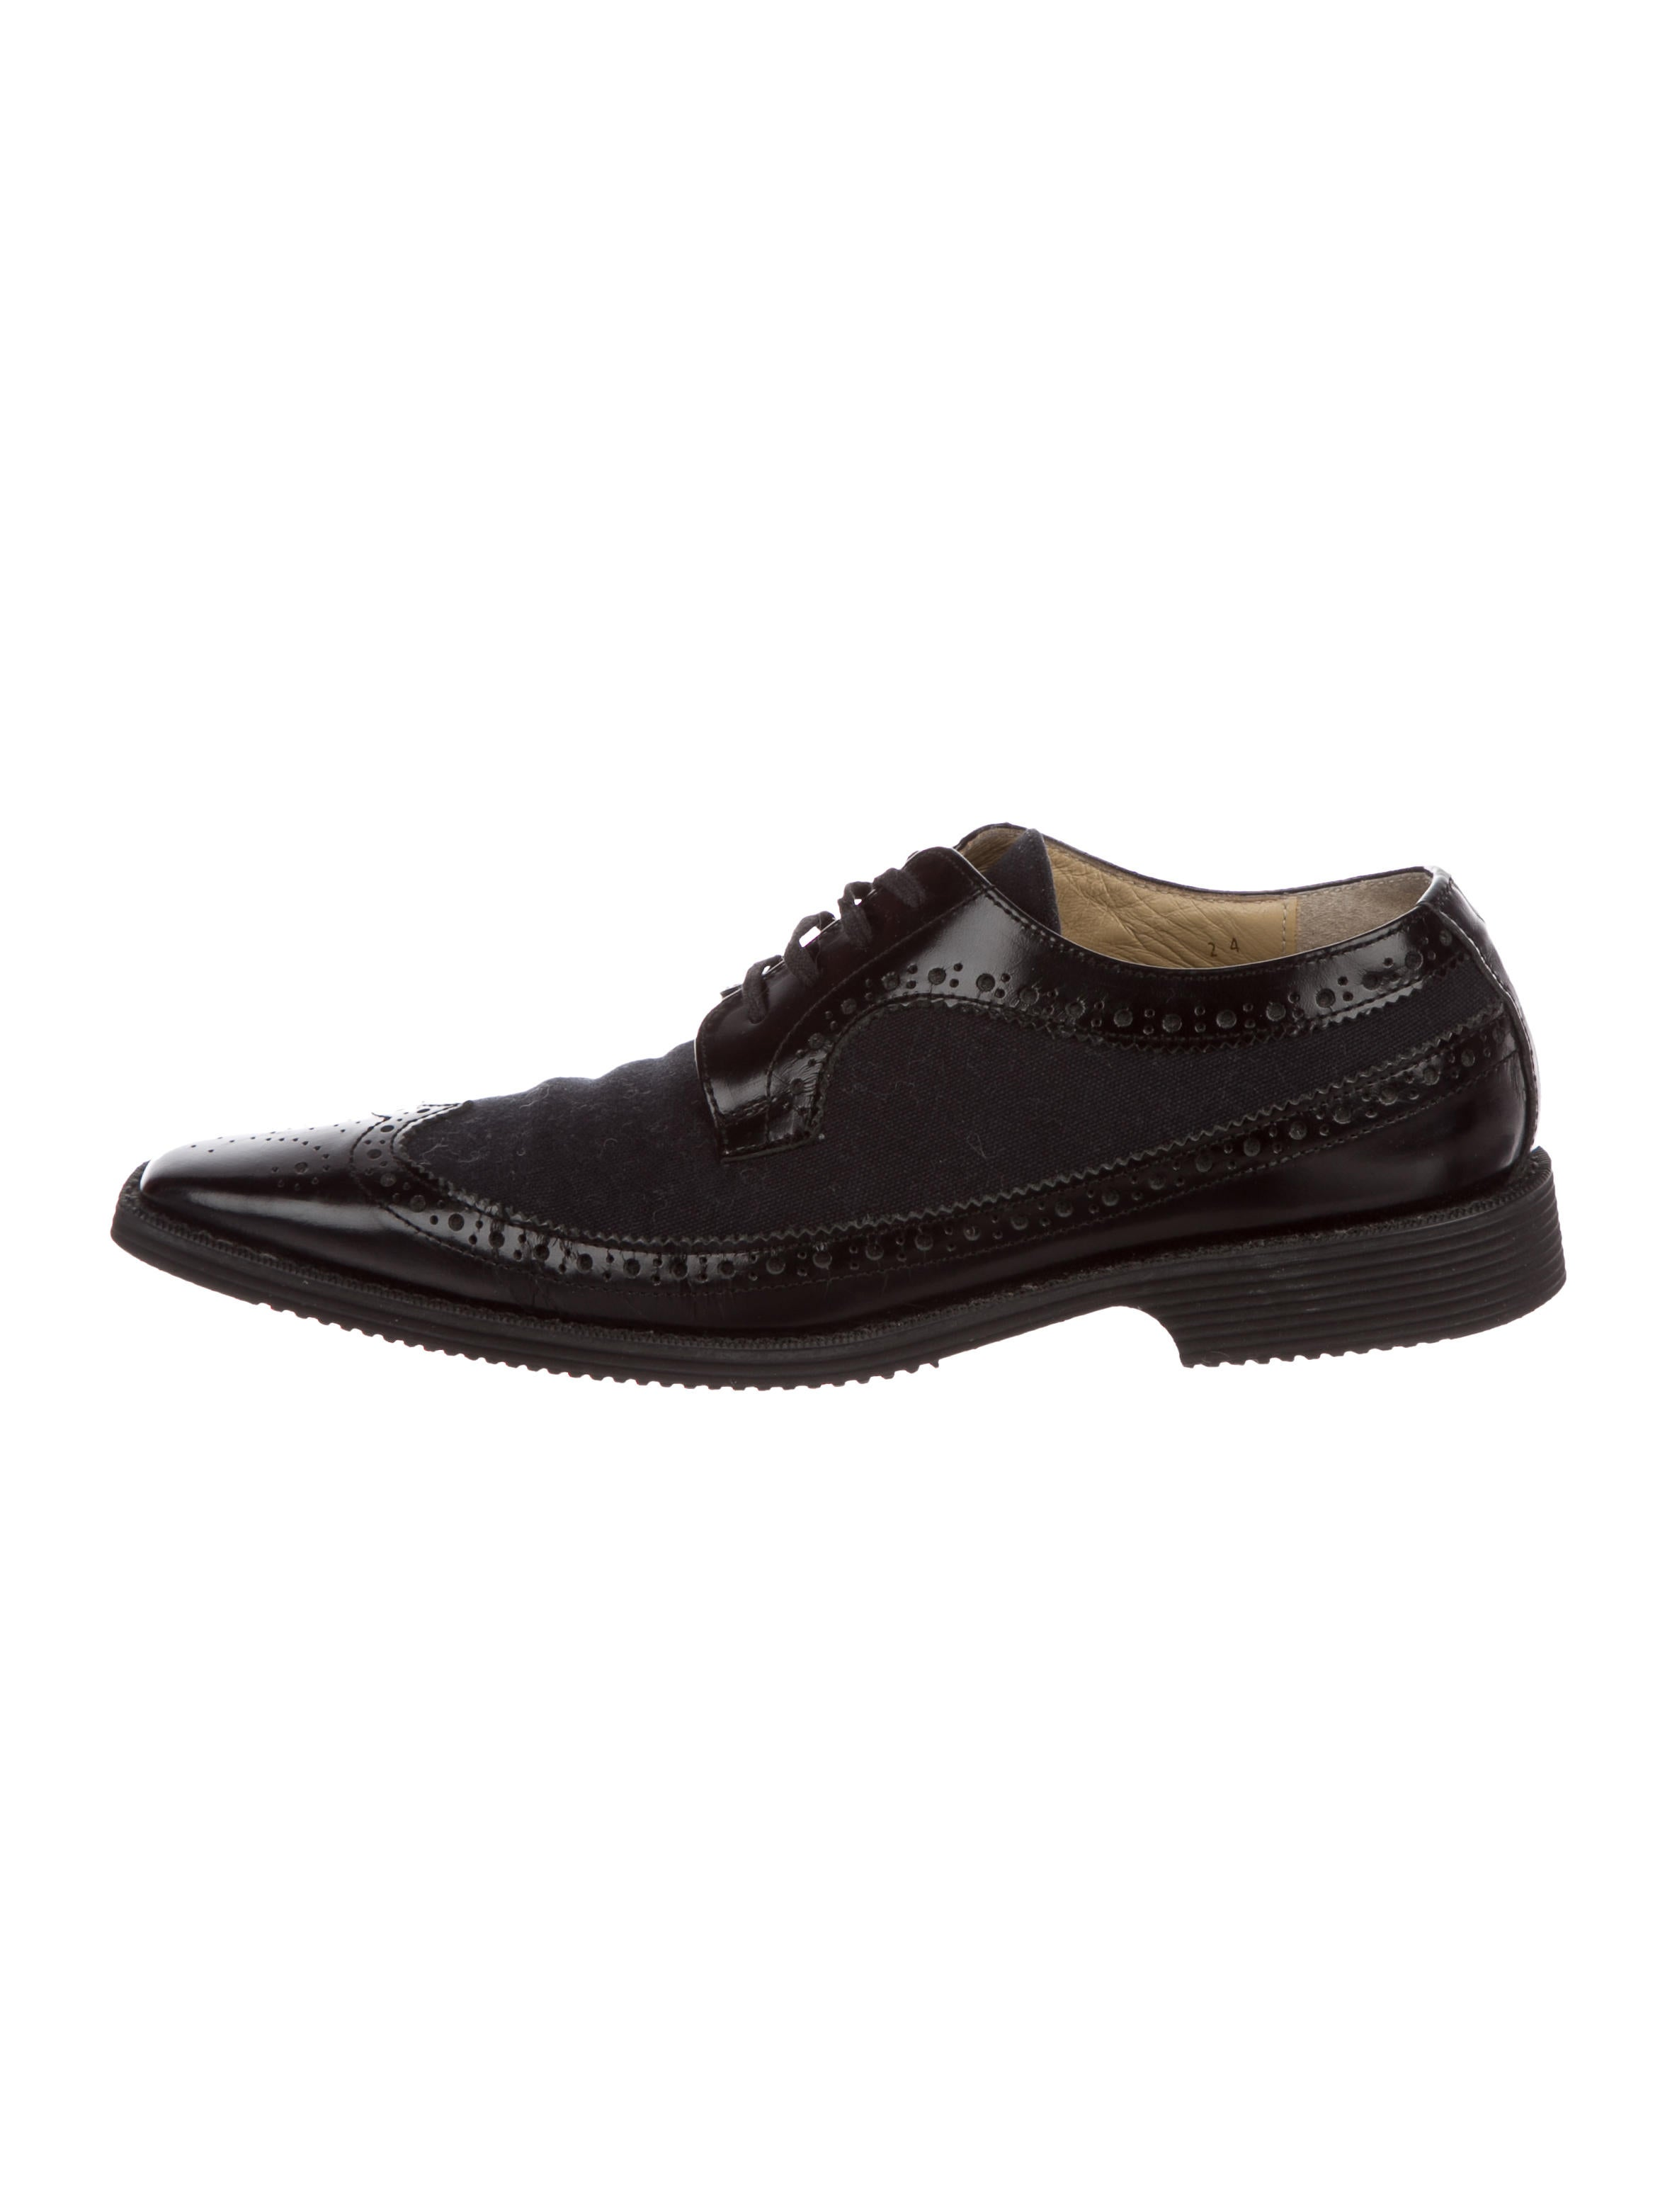 classic cheap price Comme des Garçons Brogue Wingtip Oxfords manchester great sale free shipping order release dates cheap online outlet deals lKqAg9sY